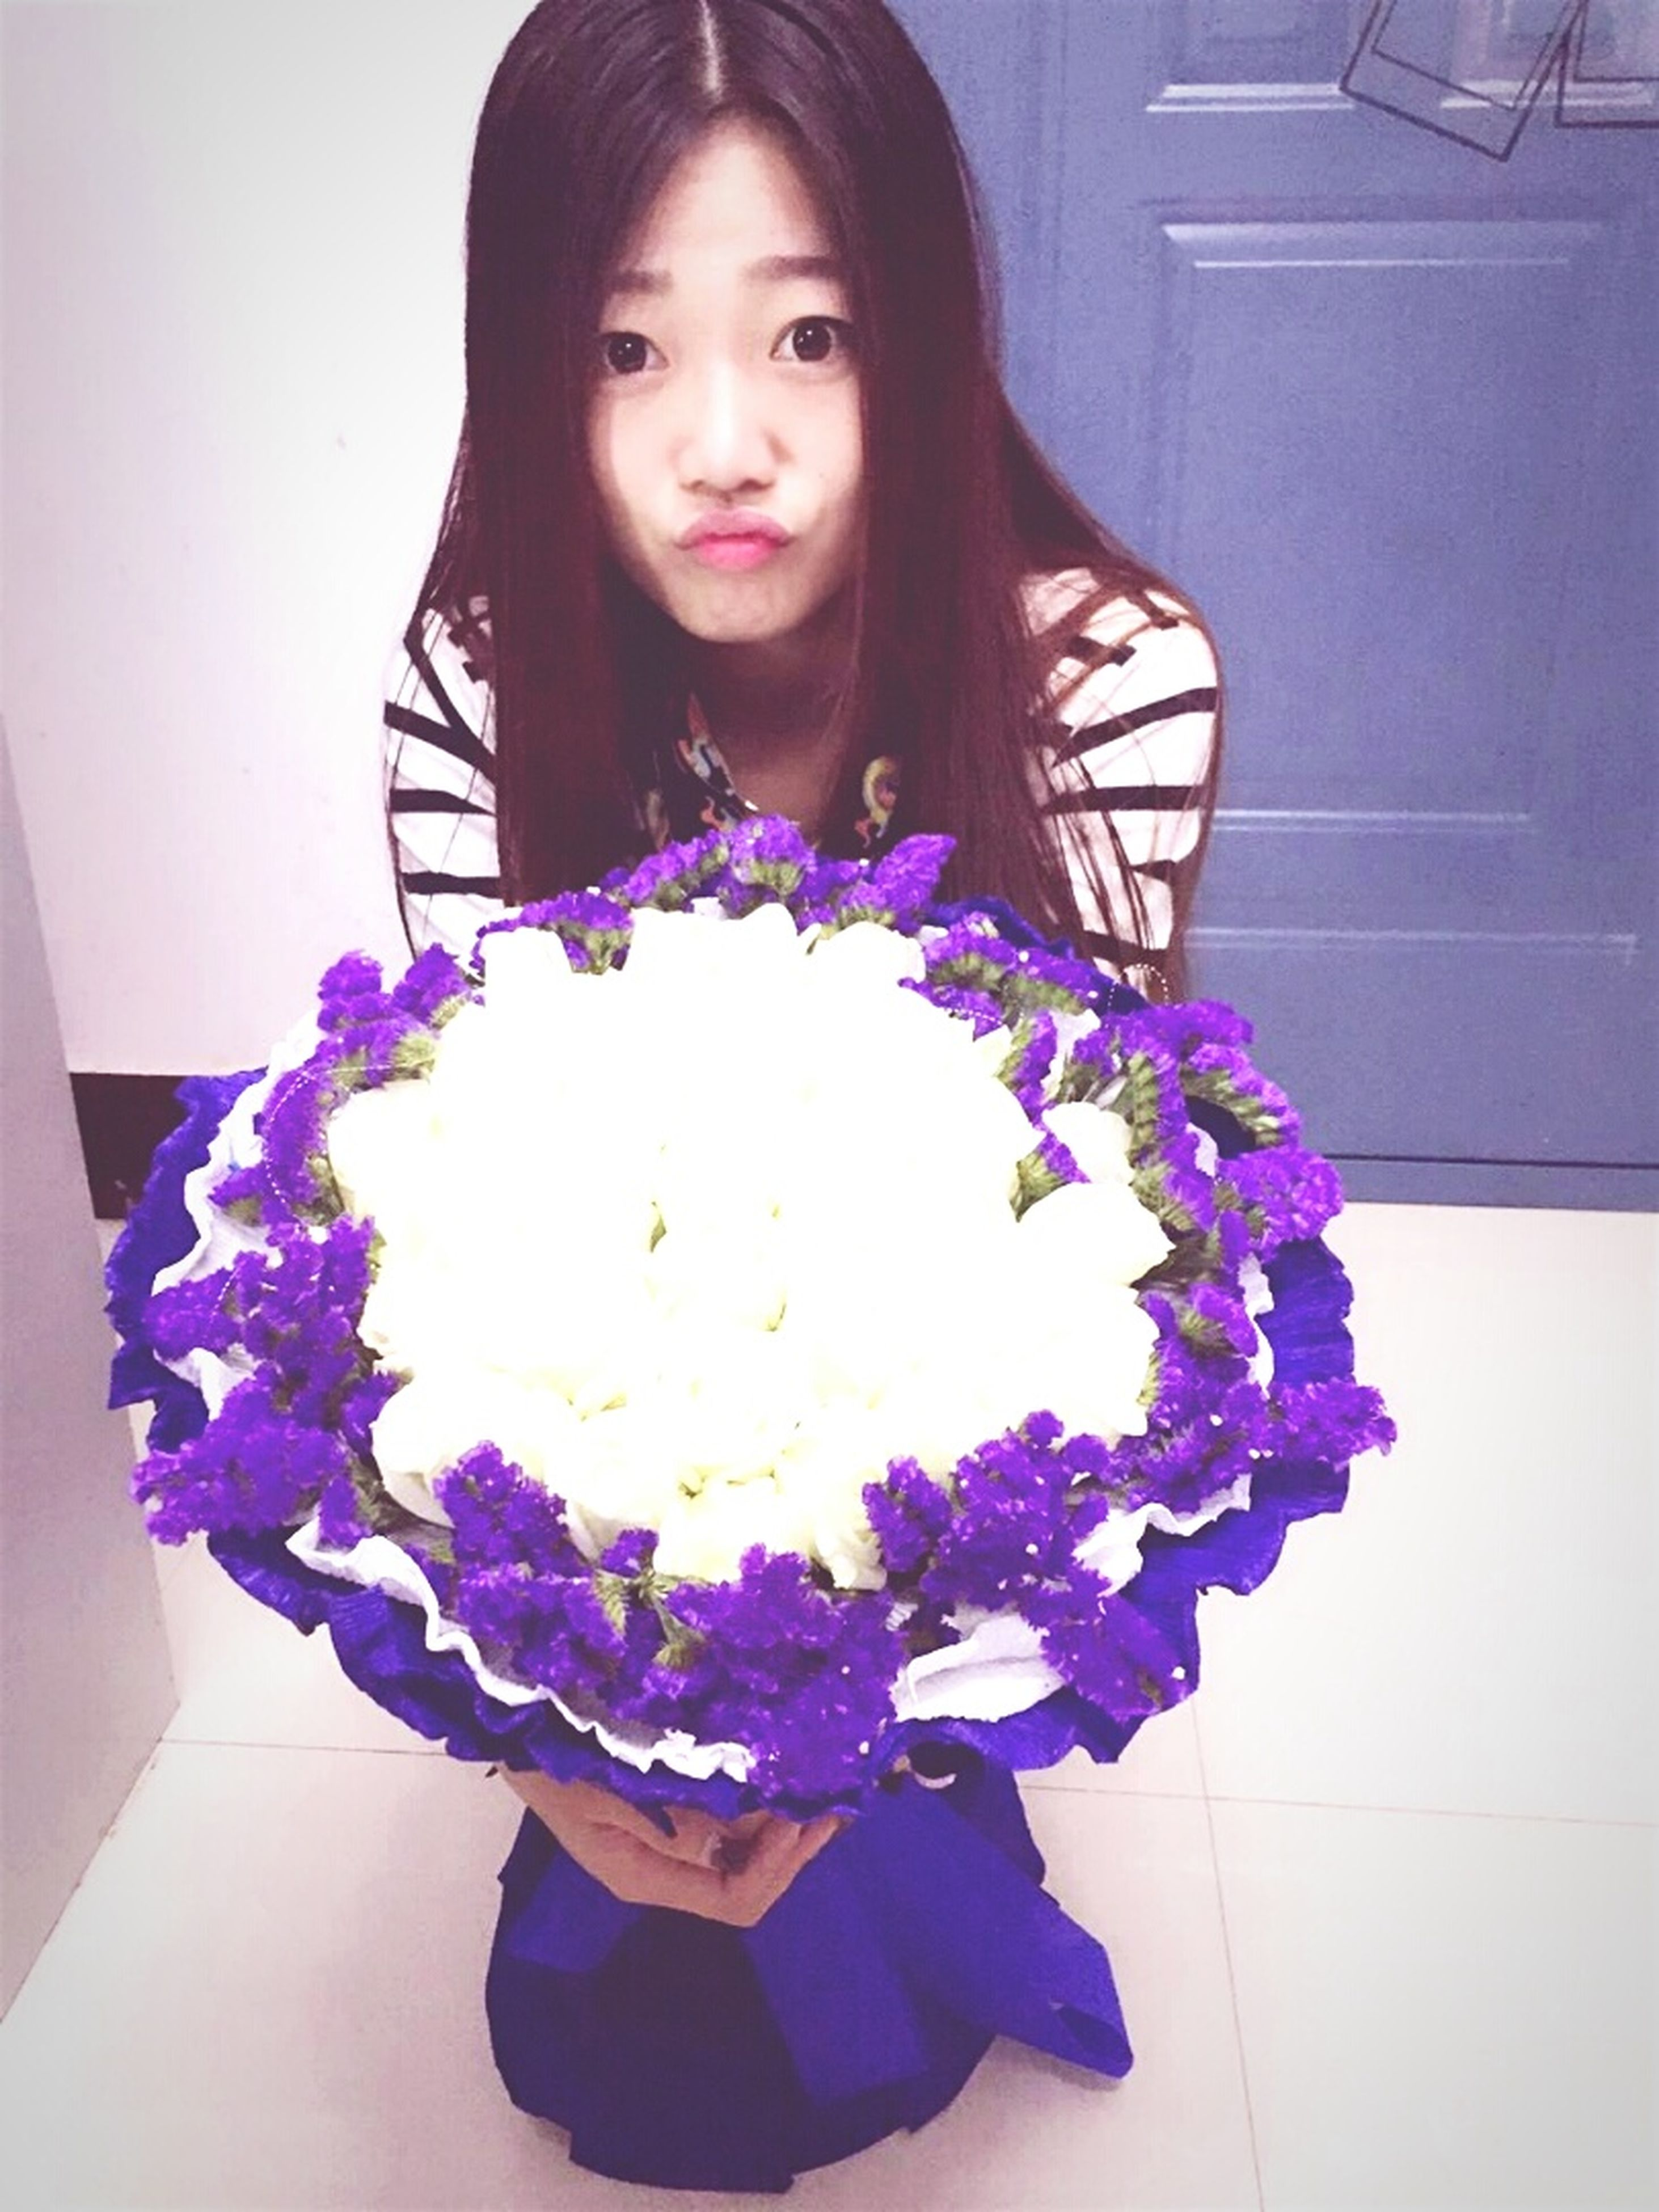 indoors, flower, front view, home interior, bouquet, lifestyles, casual clothing, purple, person, leisure activity, holding, fragility, wall - building feature, decoration, freshness, high angle view, looking at camera, portrait